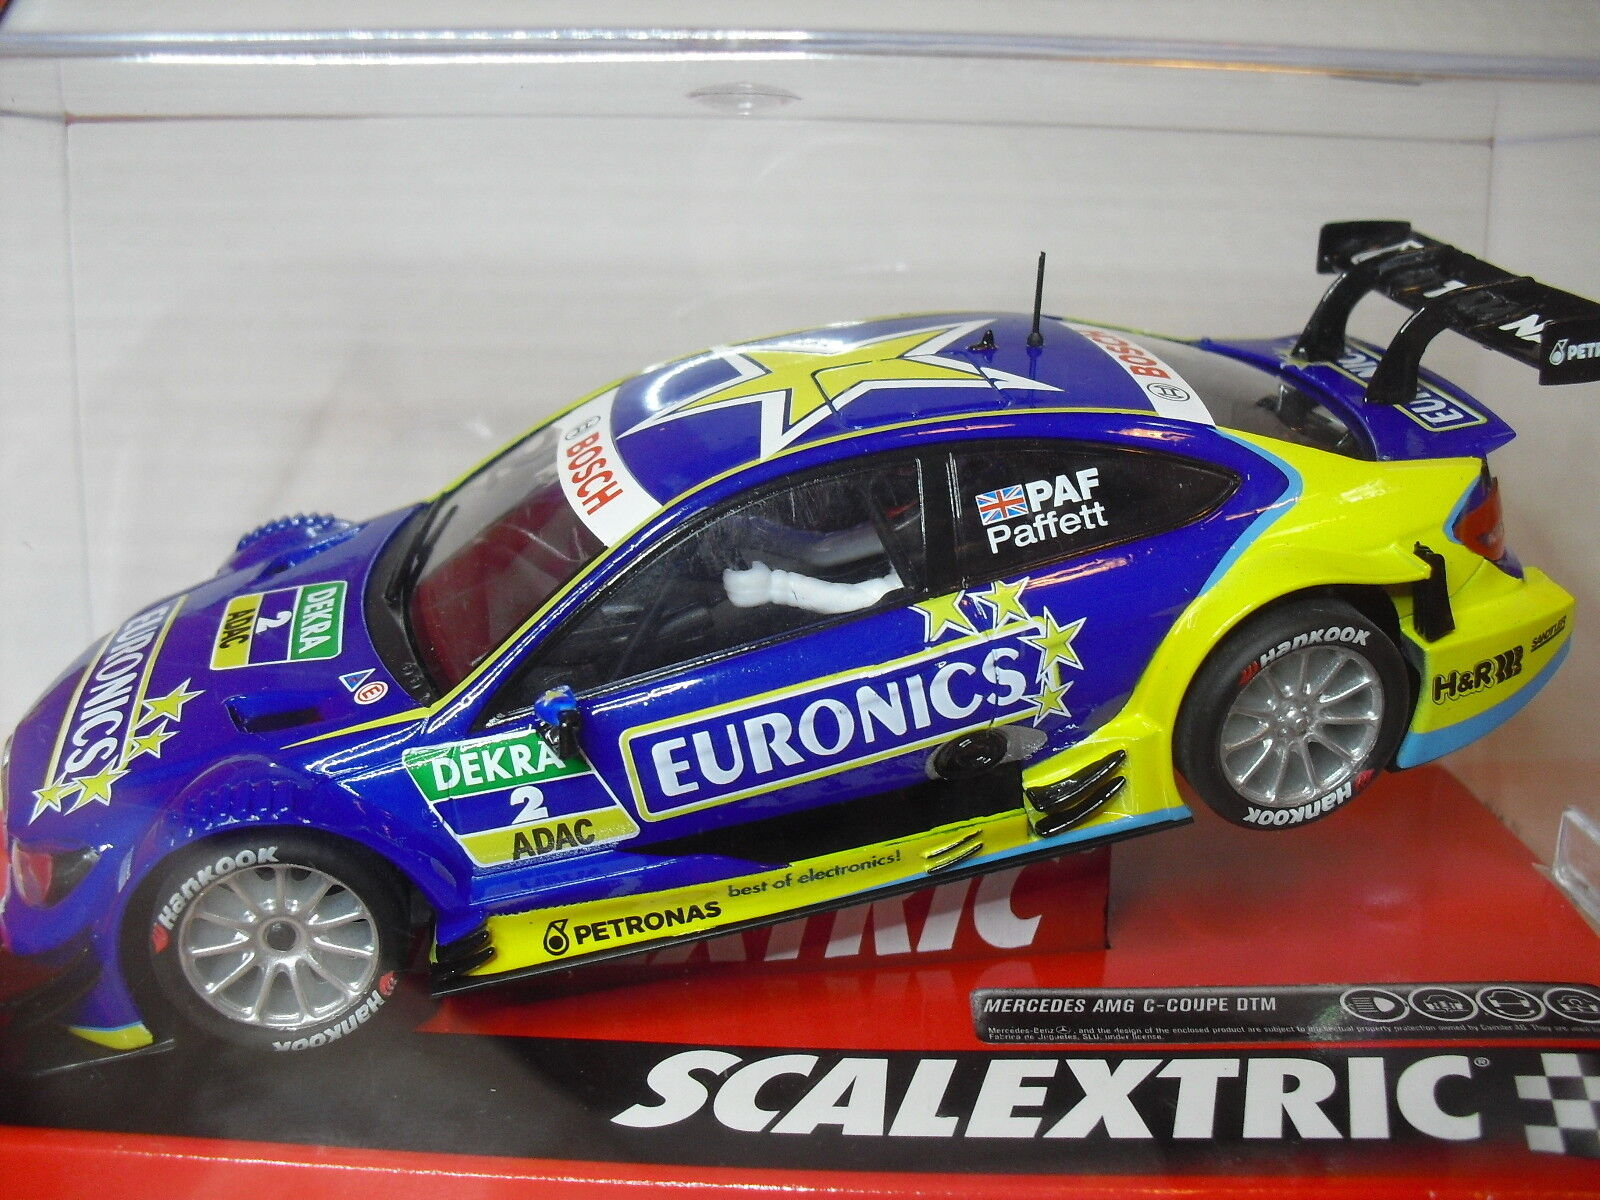 OFFER NOVED SCALEXTRIC A10214S300 Mercedes C - Coupe   Pafett  AMG DTM 1 32 new